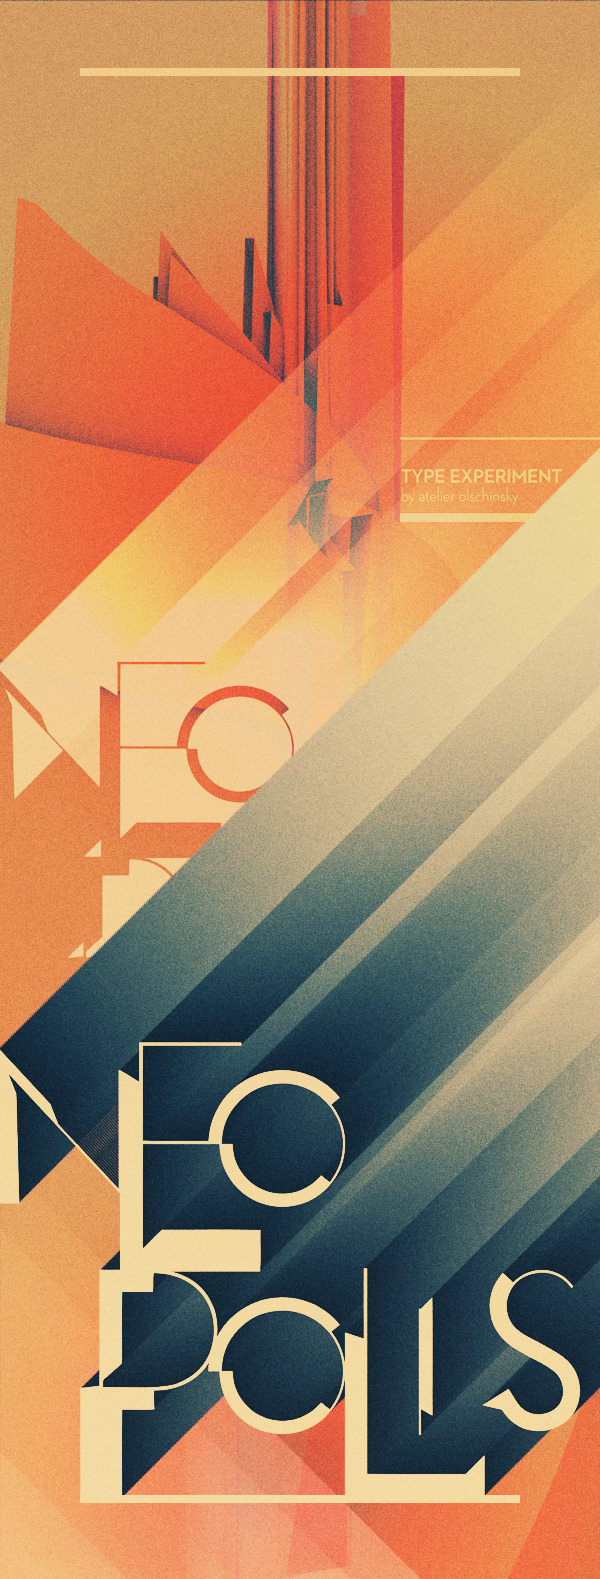 Neopolis (via Behance Network)